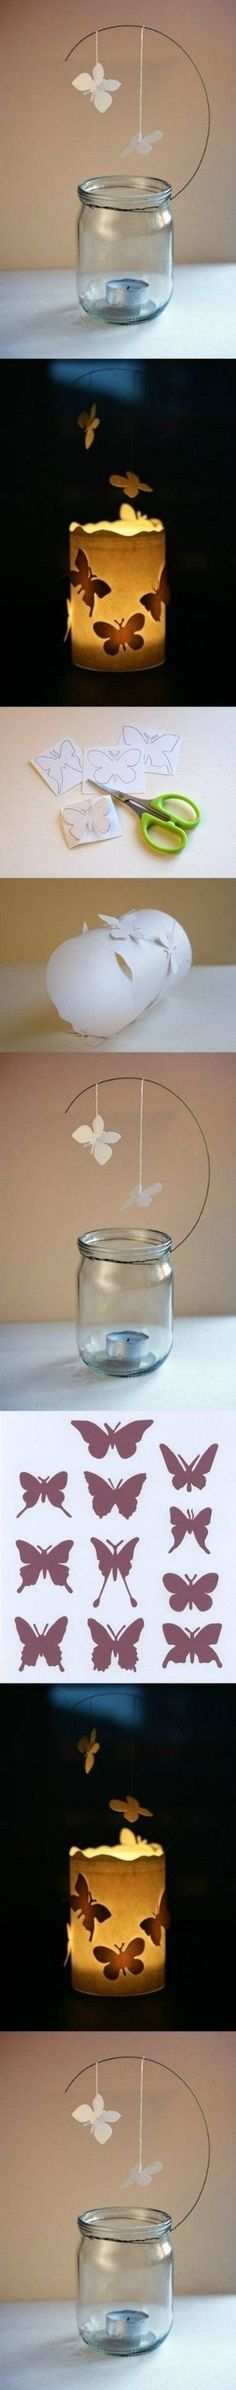 DIY Butterfly Candle